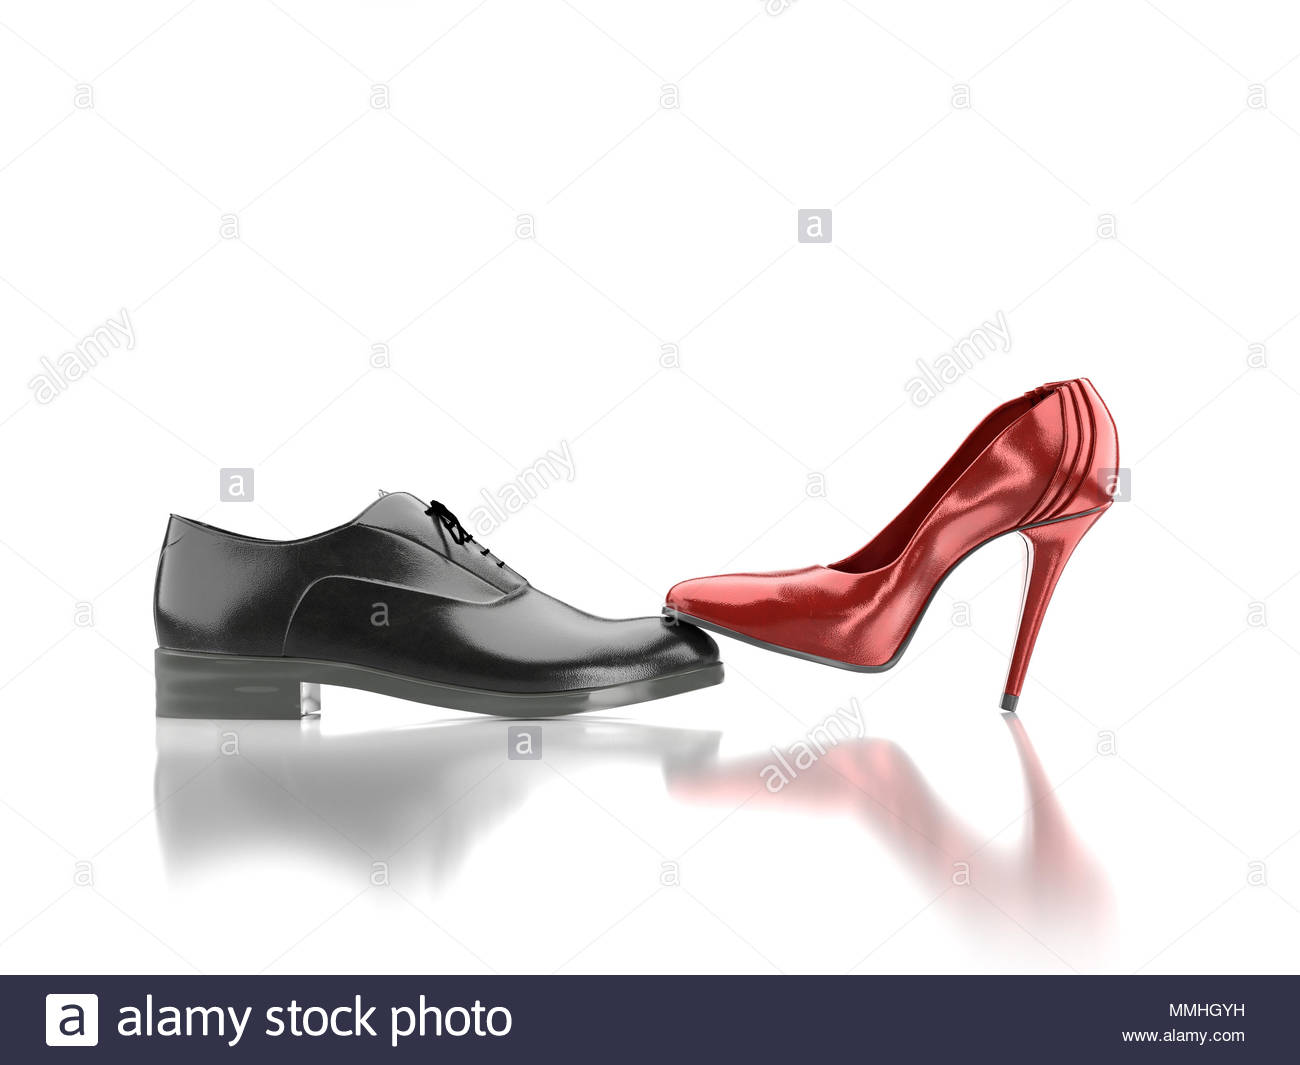 3D render of female red high hilled shoe pressing against black 1300x1065